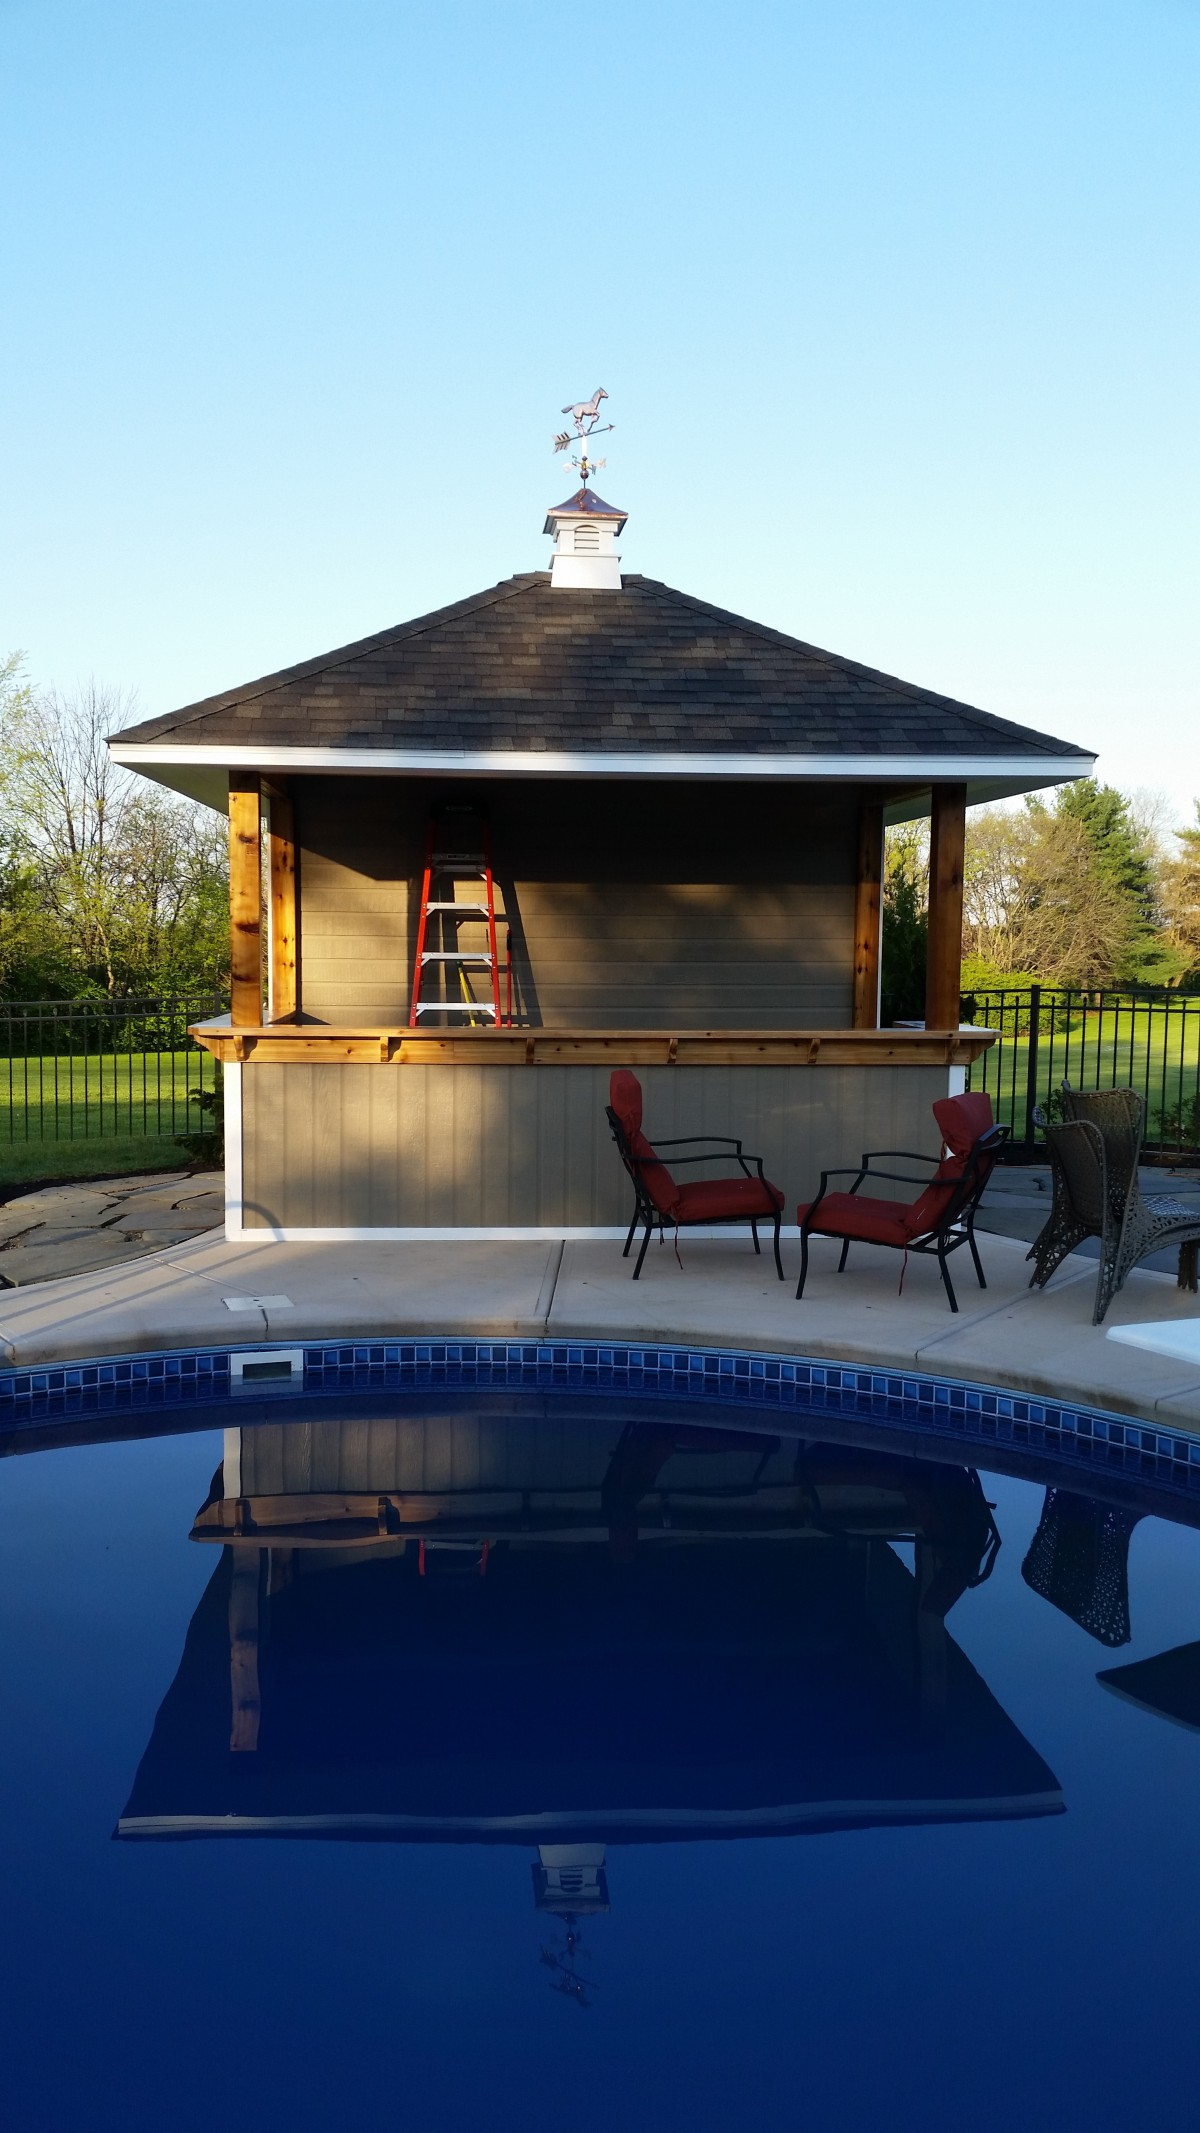 Surfside pool house design 10x12 with a cupola side profile by a poolside seen from the front1. ID number